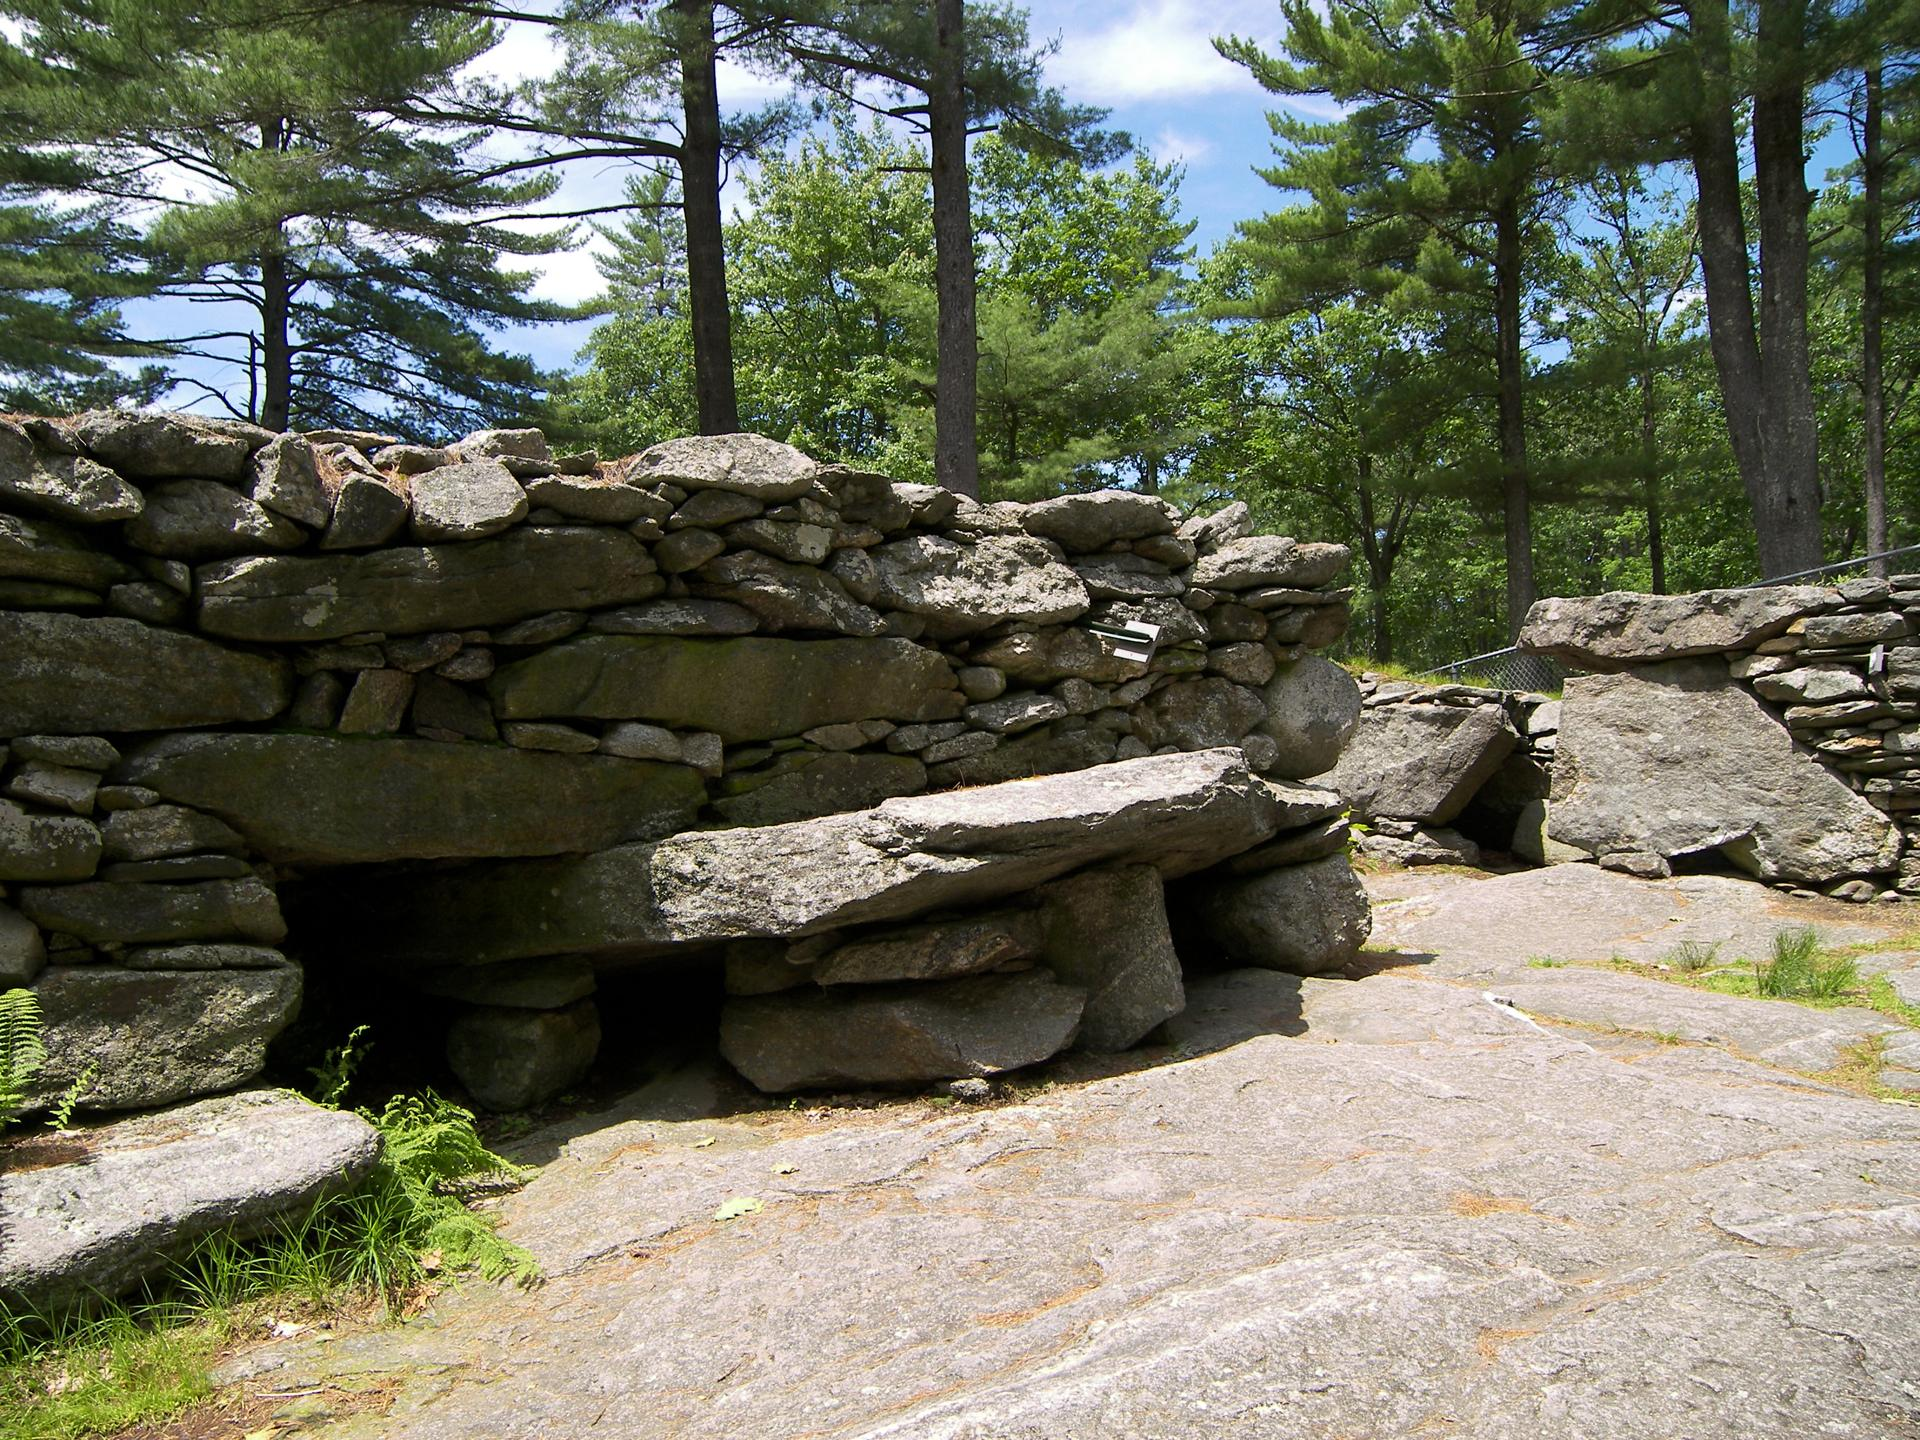 One of the ancient constructions at America's Stonehenge in Salem, NH.